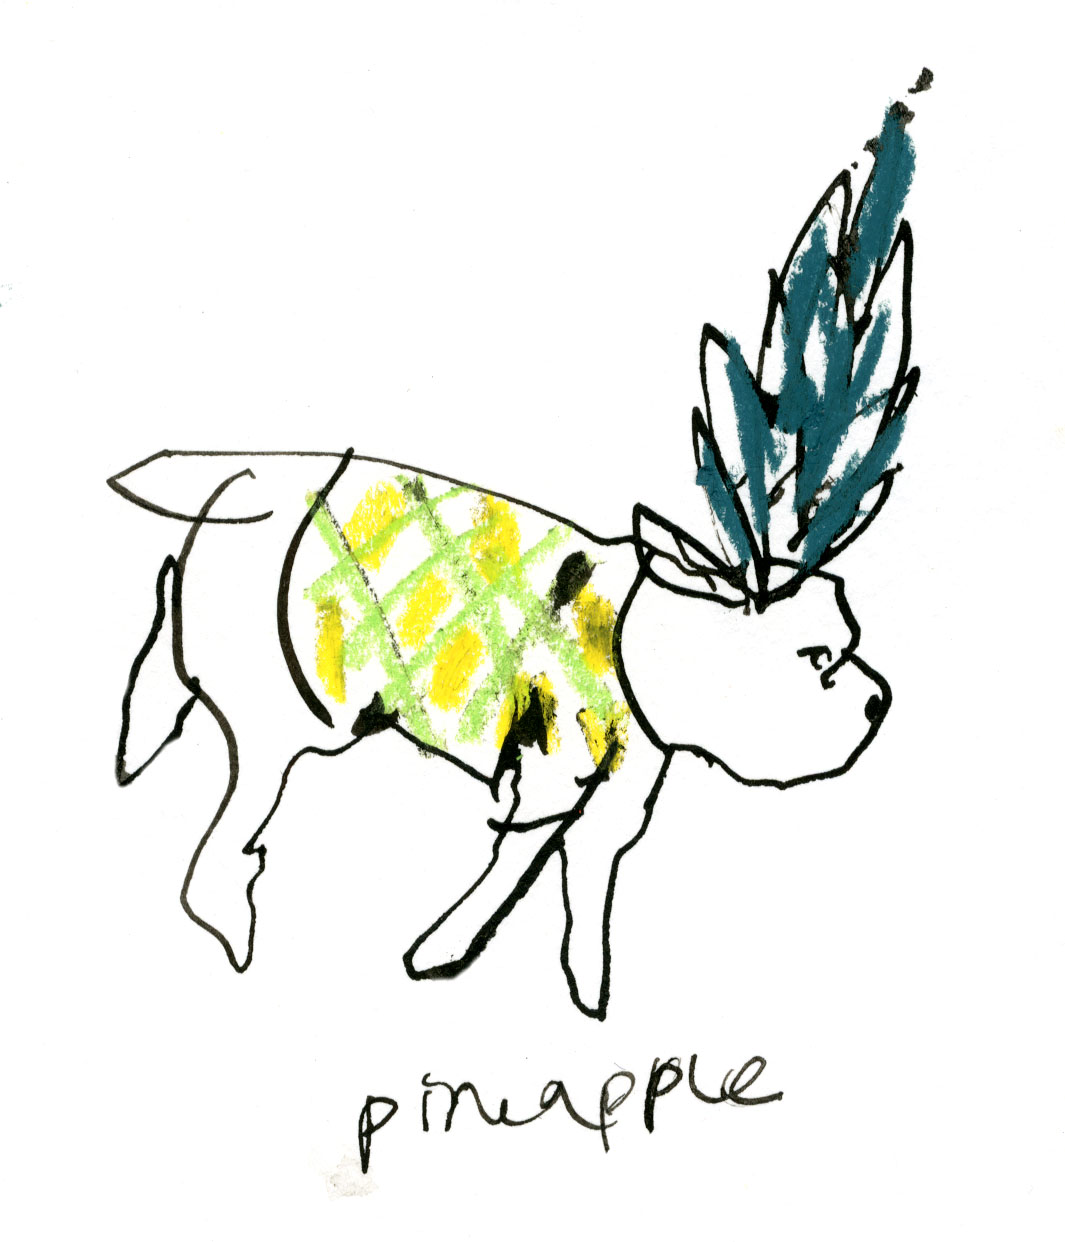 Pineapple dog © Carly Larsson 2014